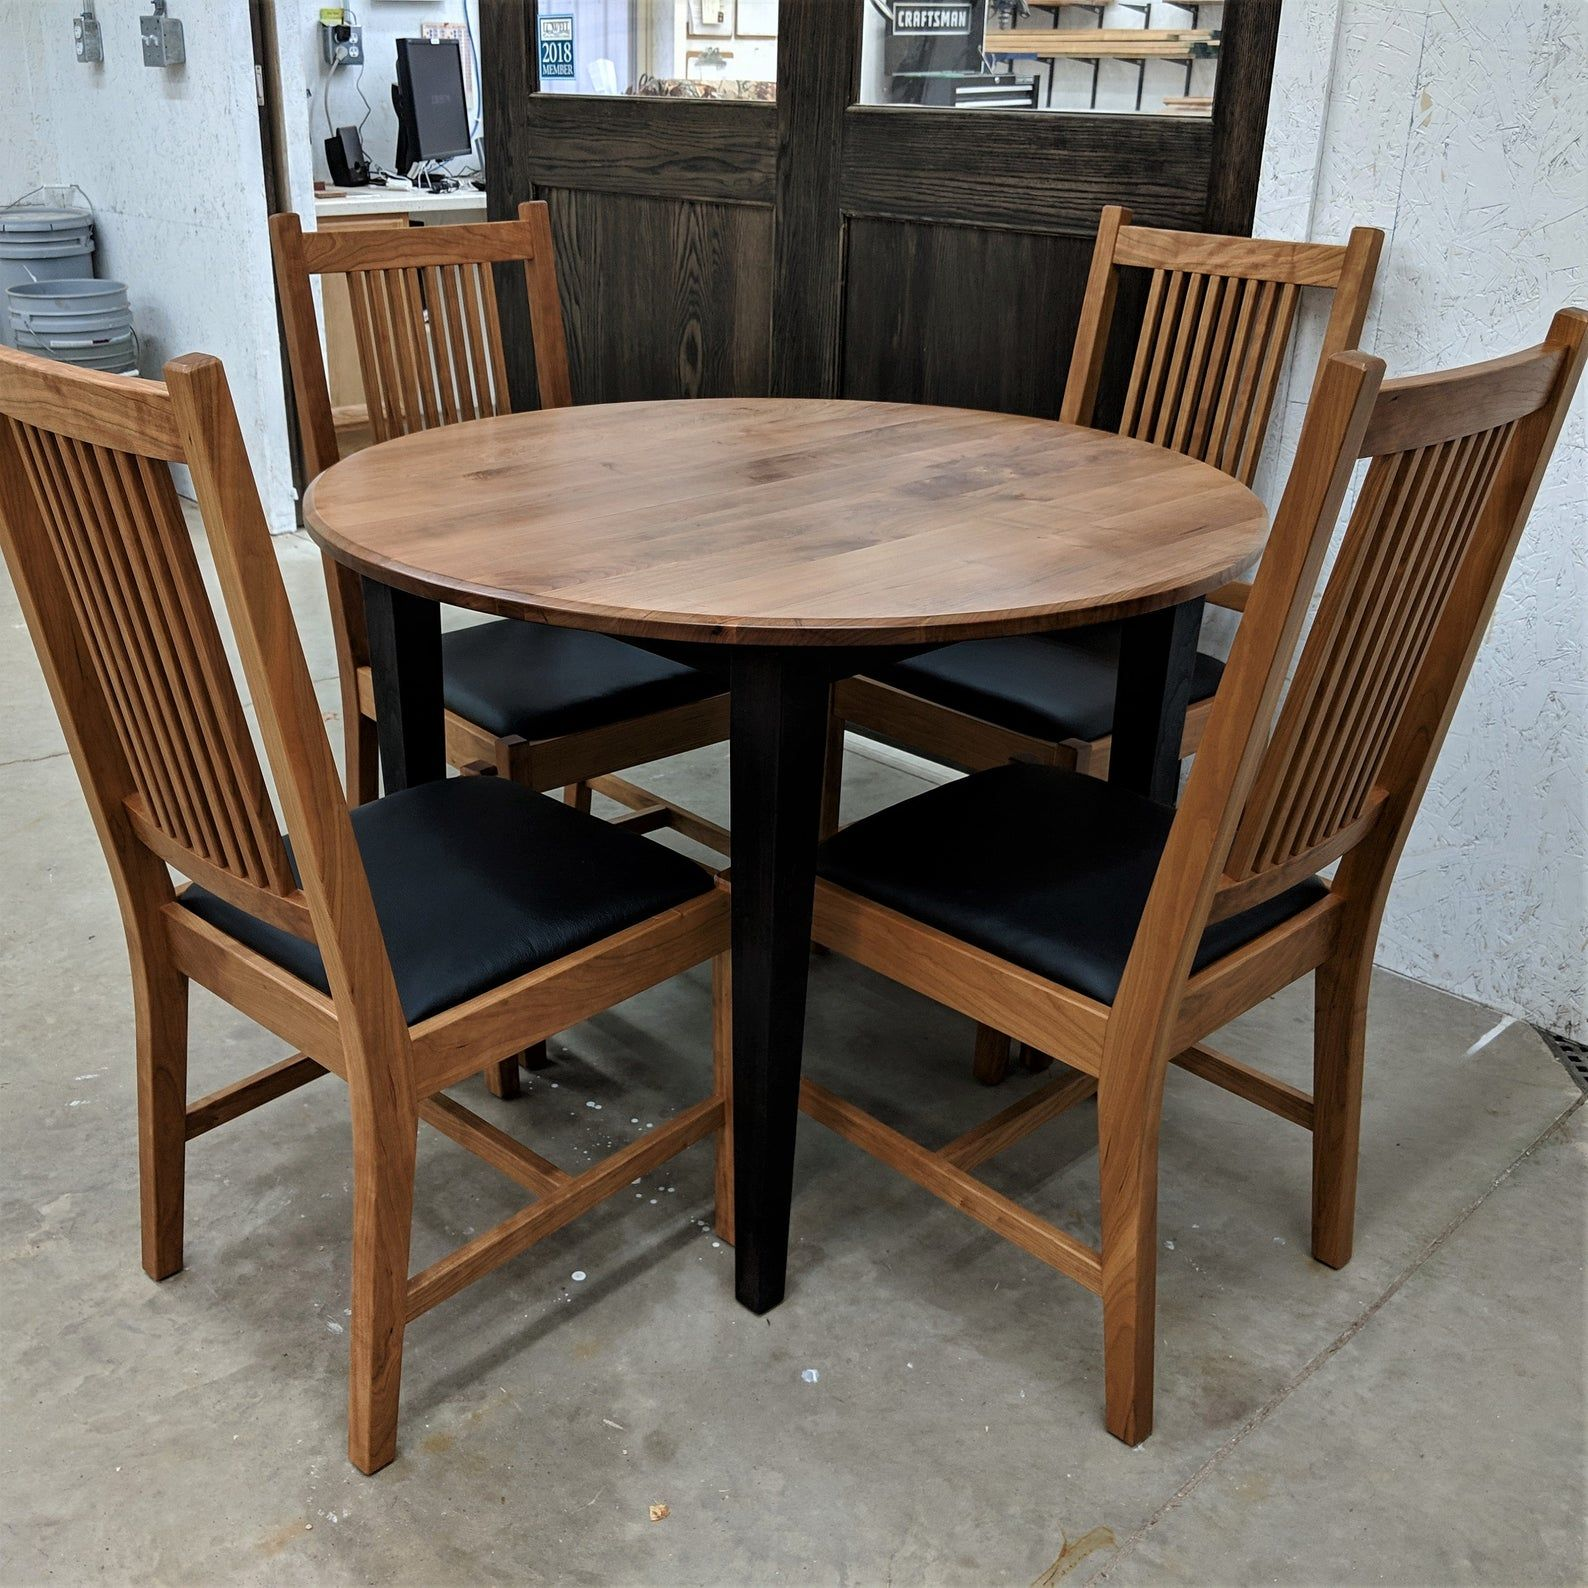 Solid Cherry Extension Dining Table Etsy Extension Dining Table Small Apartment Size Round Extension Table